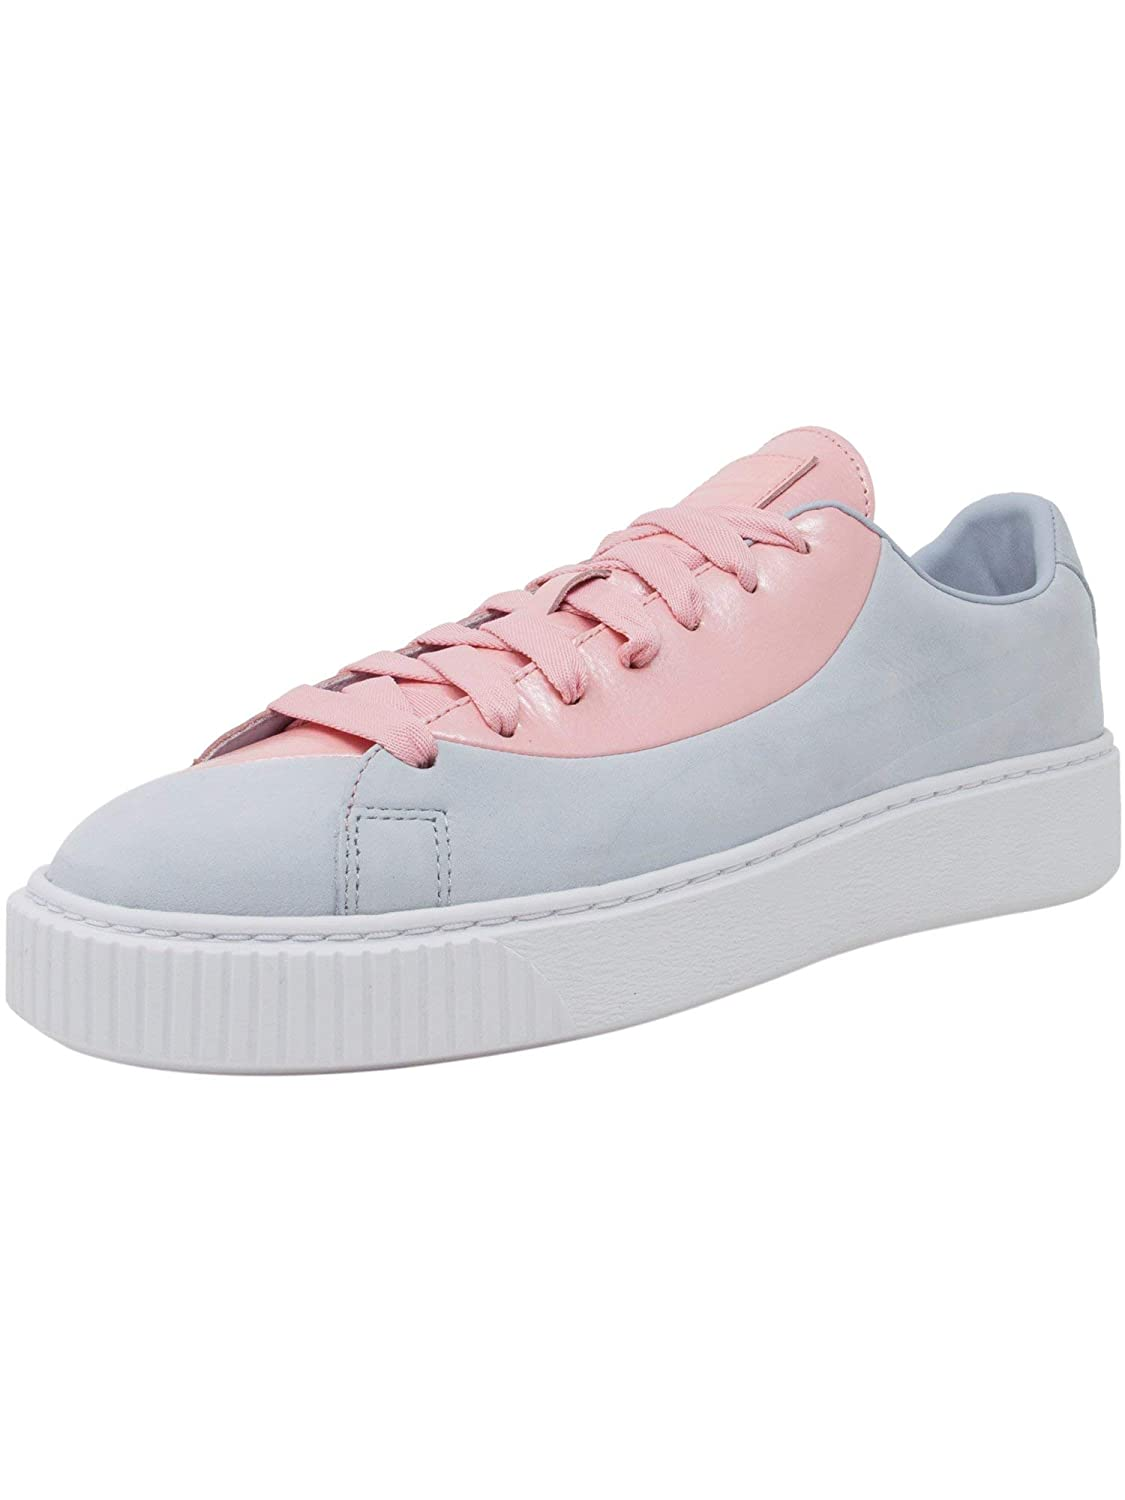 save off e0414 fbbe0 PUMA Womens Basket Platform Val FM